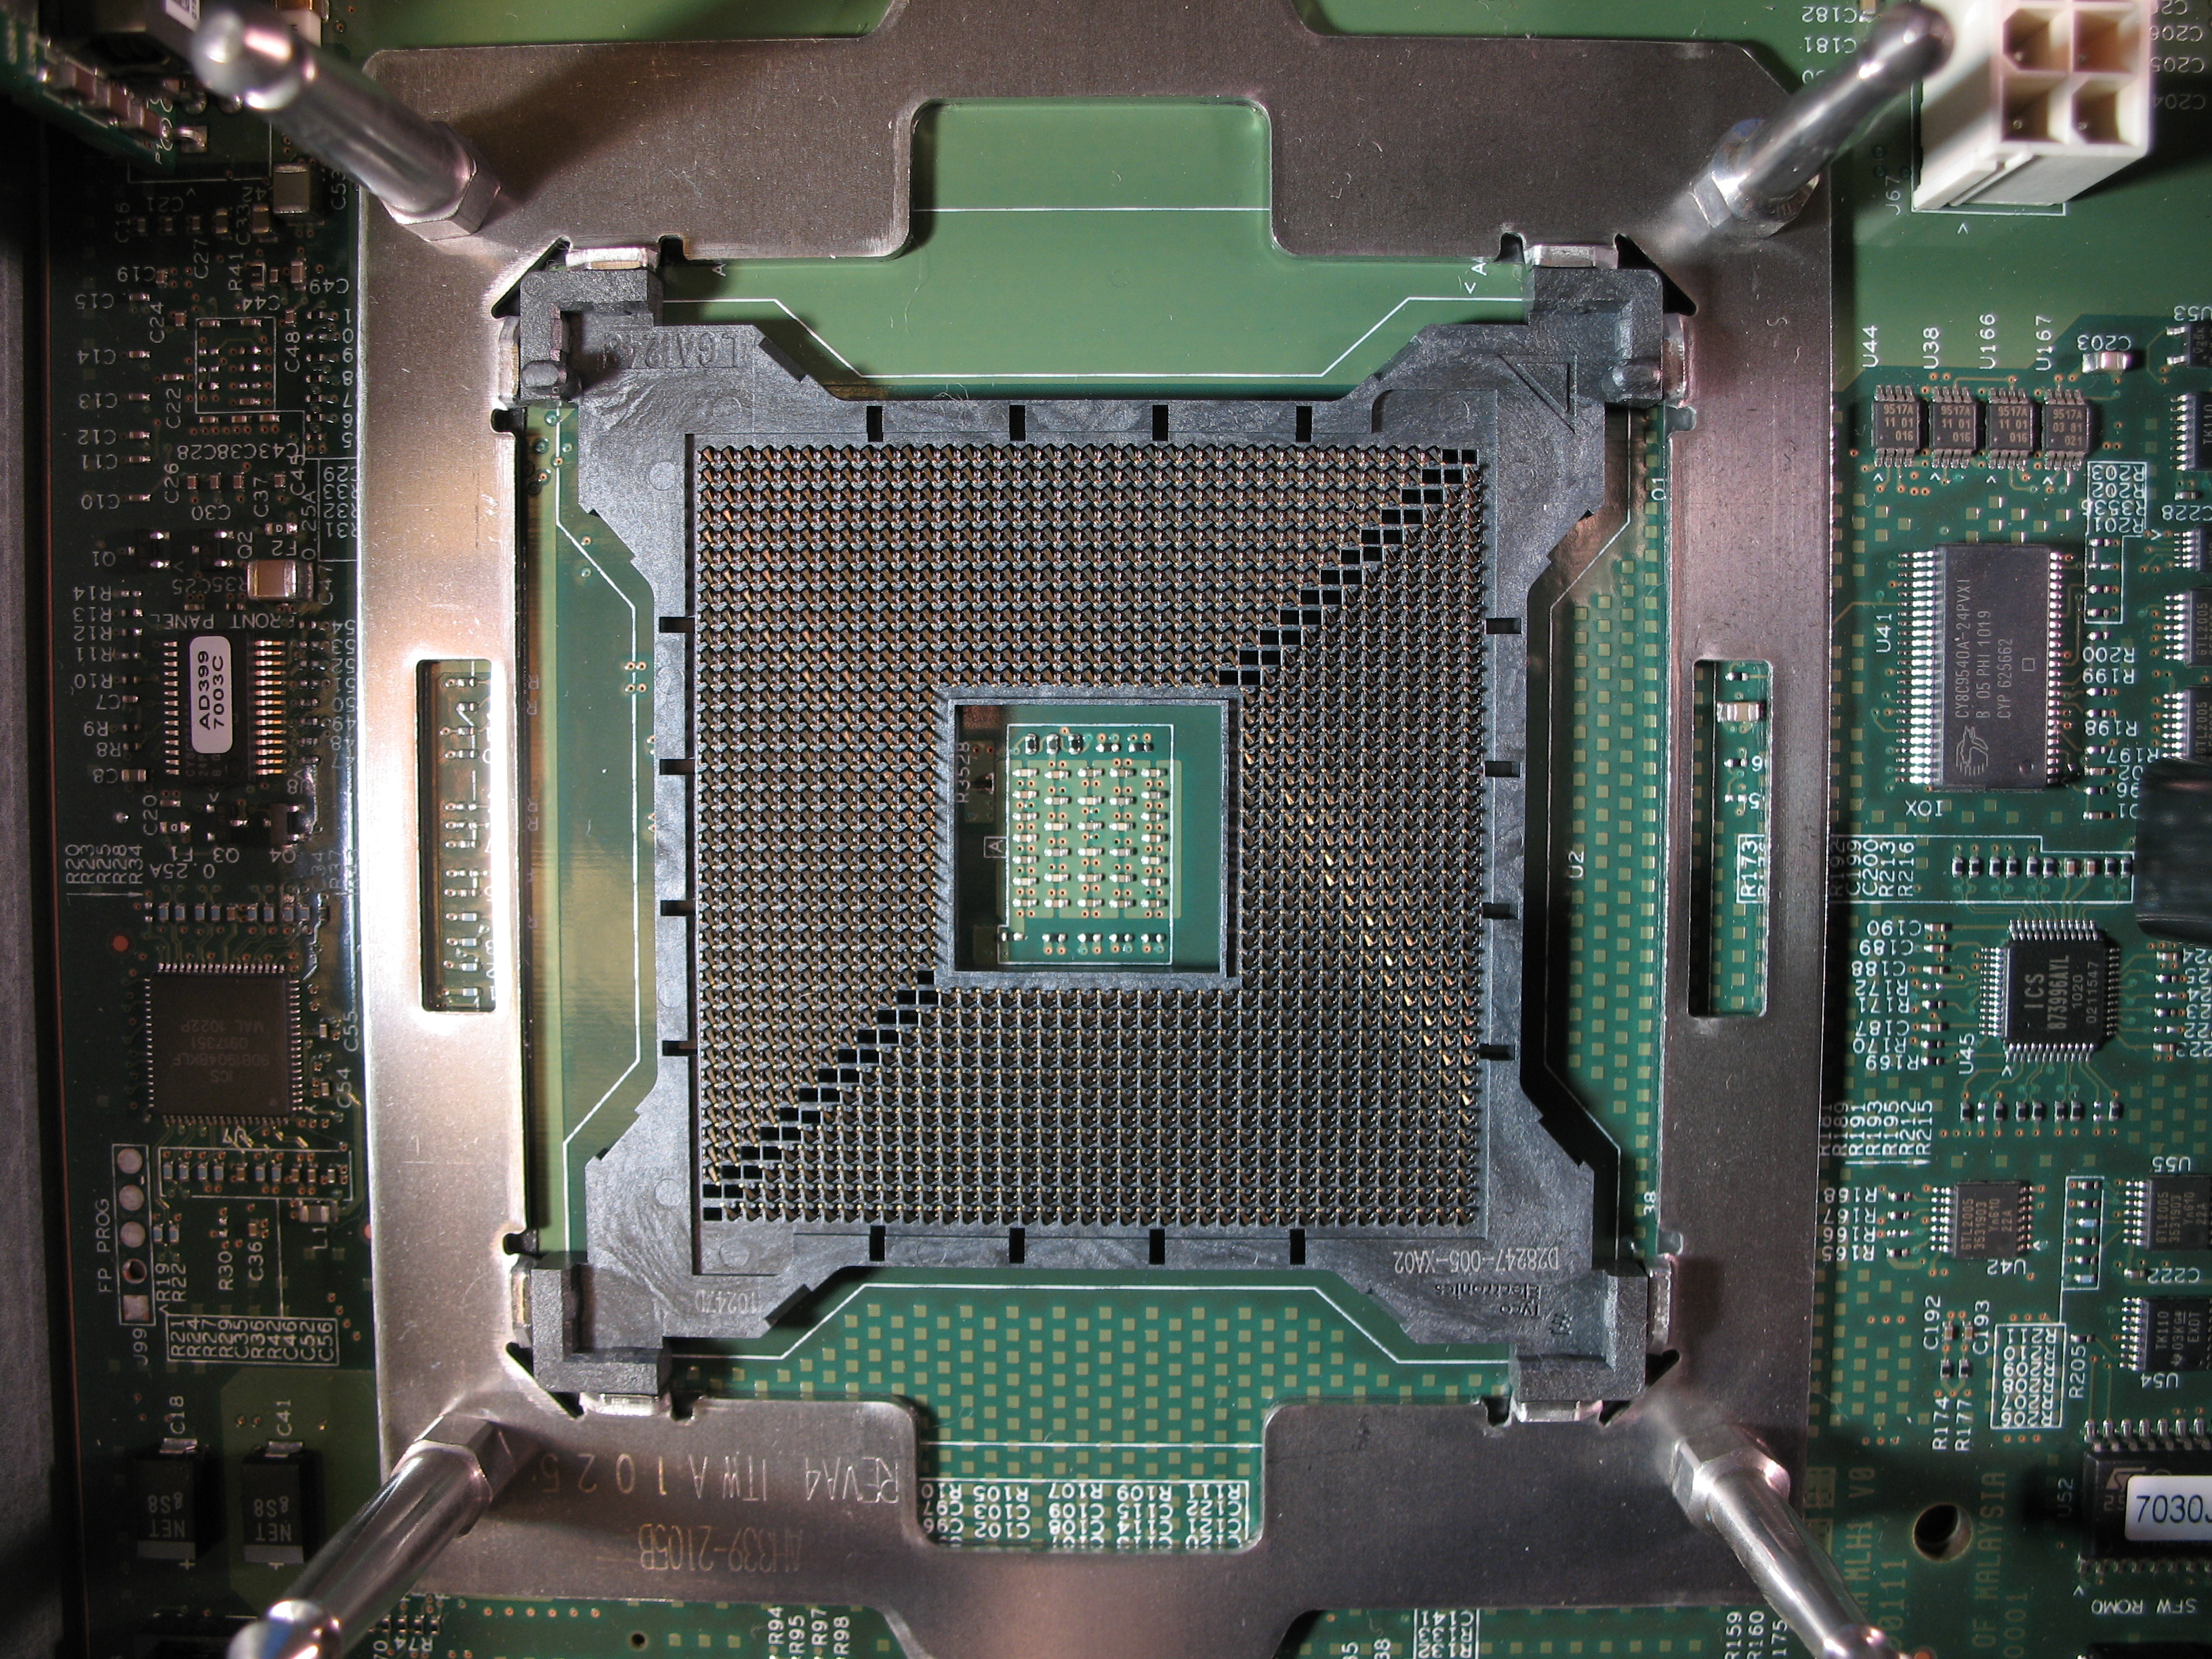 File:Intel Itanium 9300 Socket Intel LGA 1248.JPG